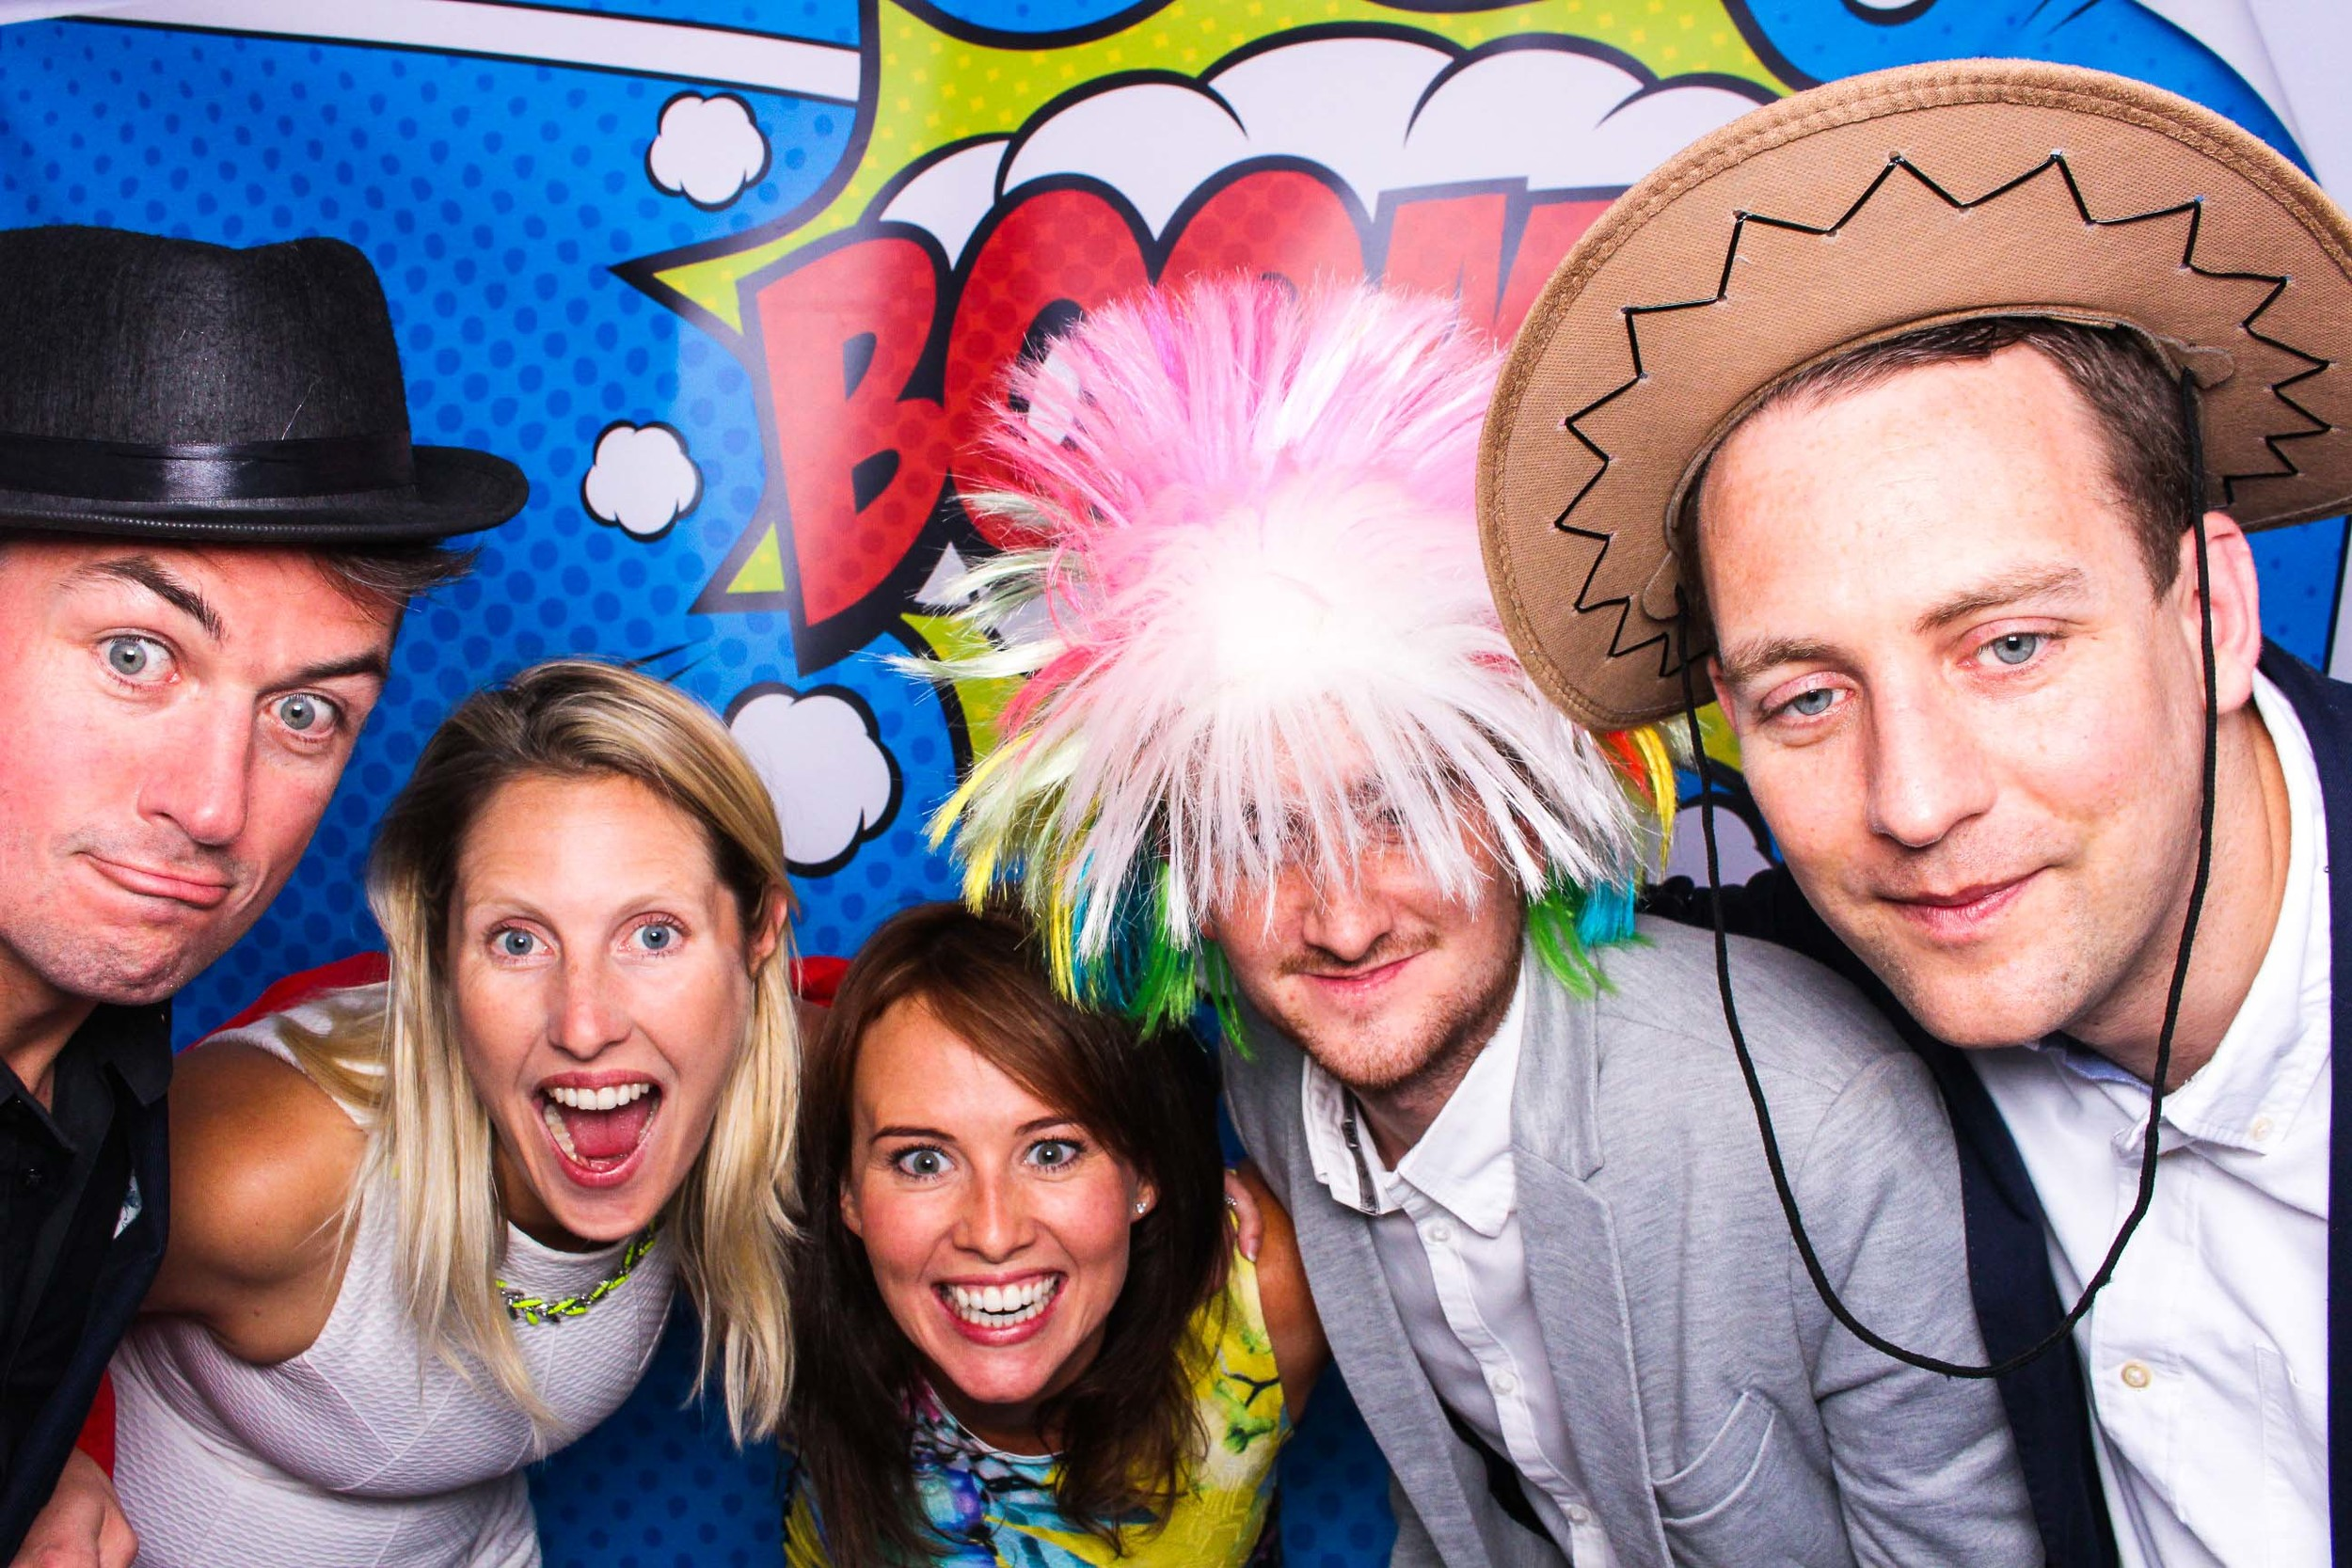 Fotoauto Photo Booth Hire - Shop Direct-299.jpg